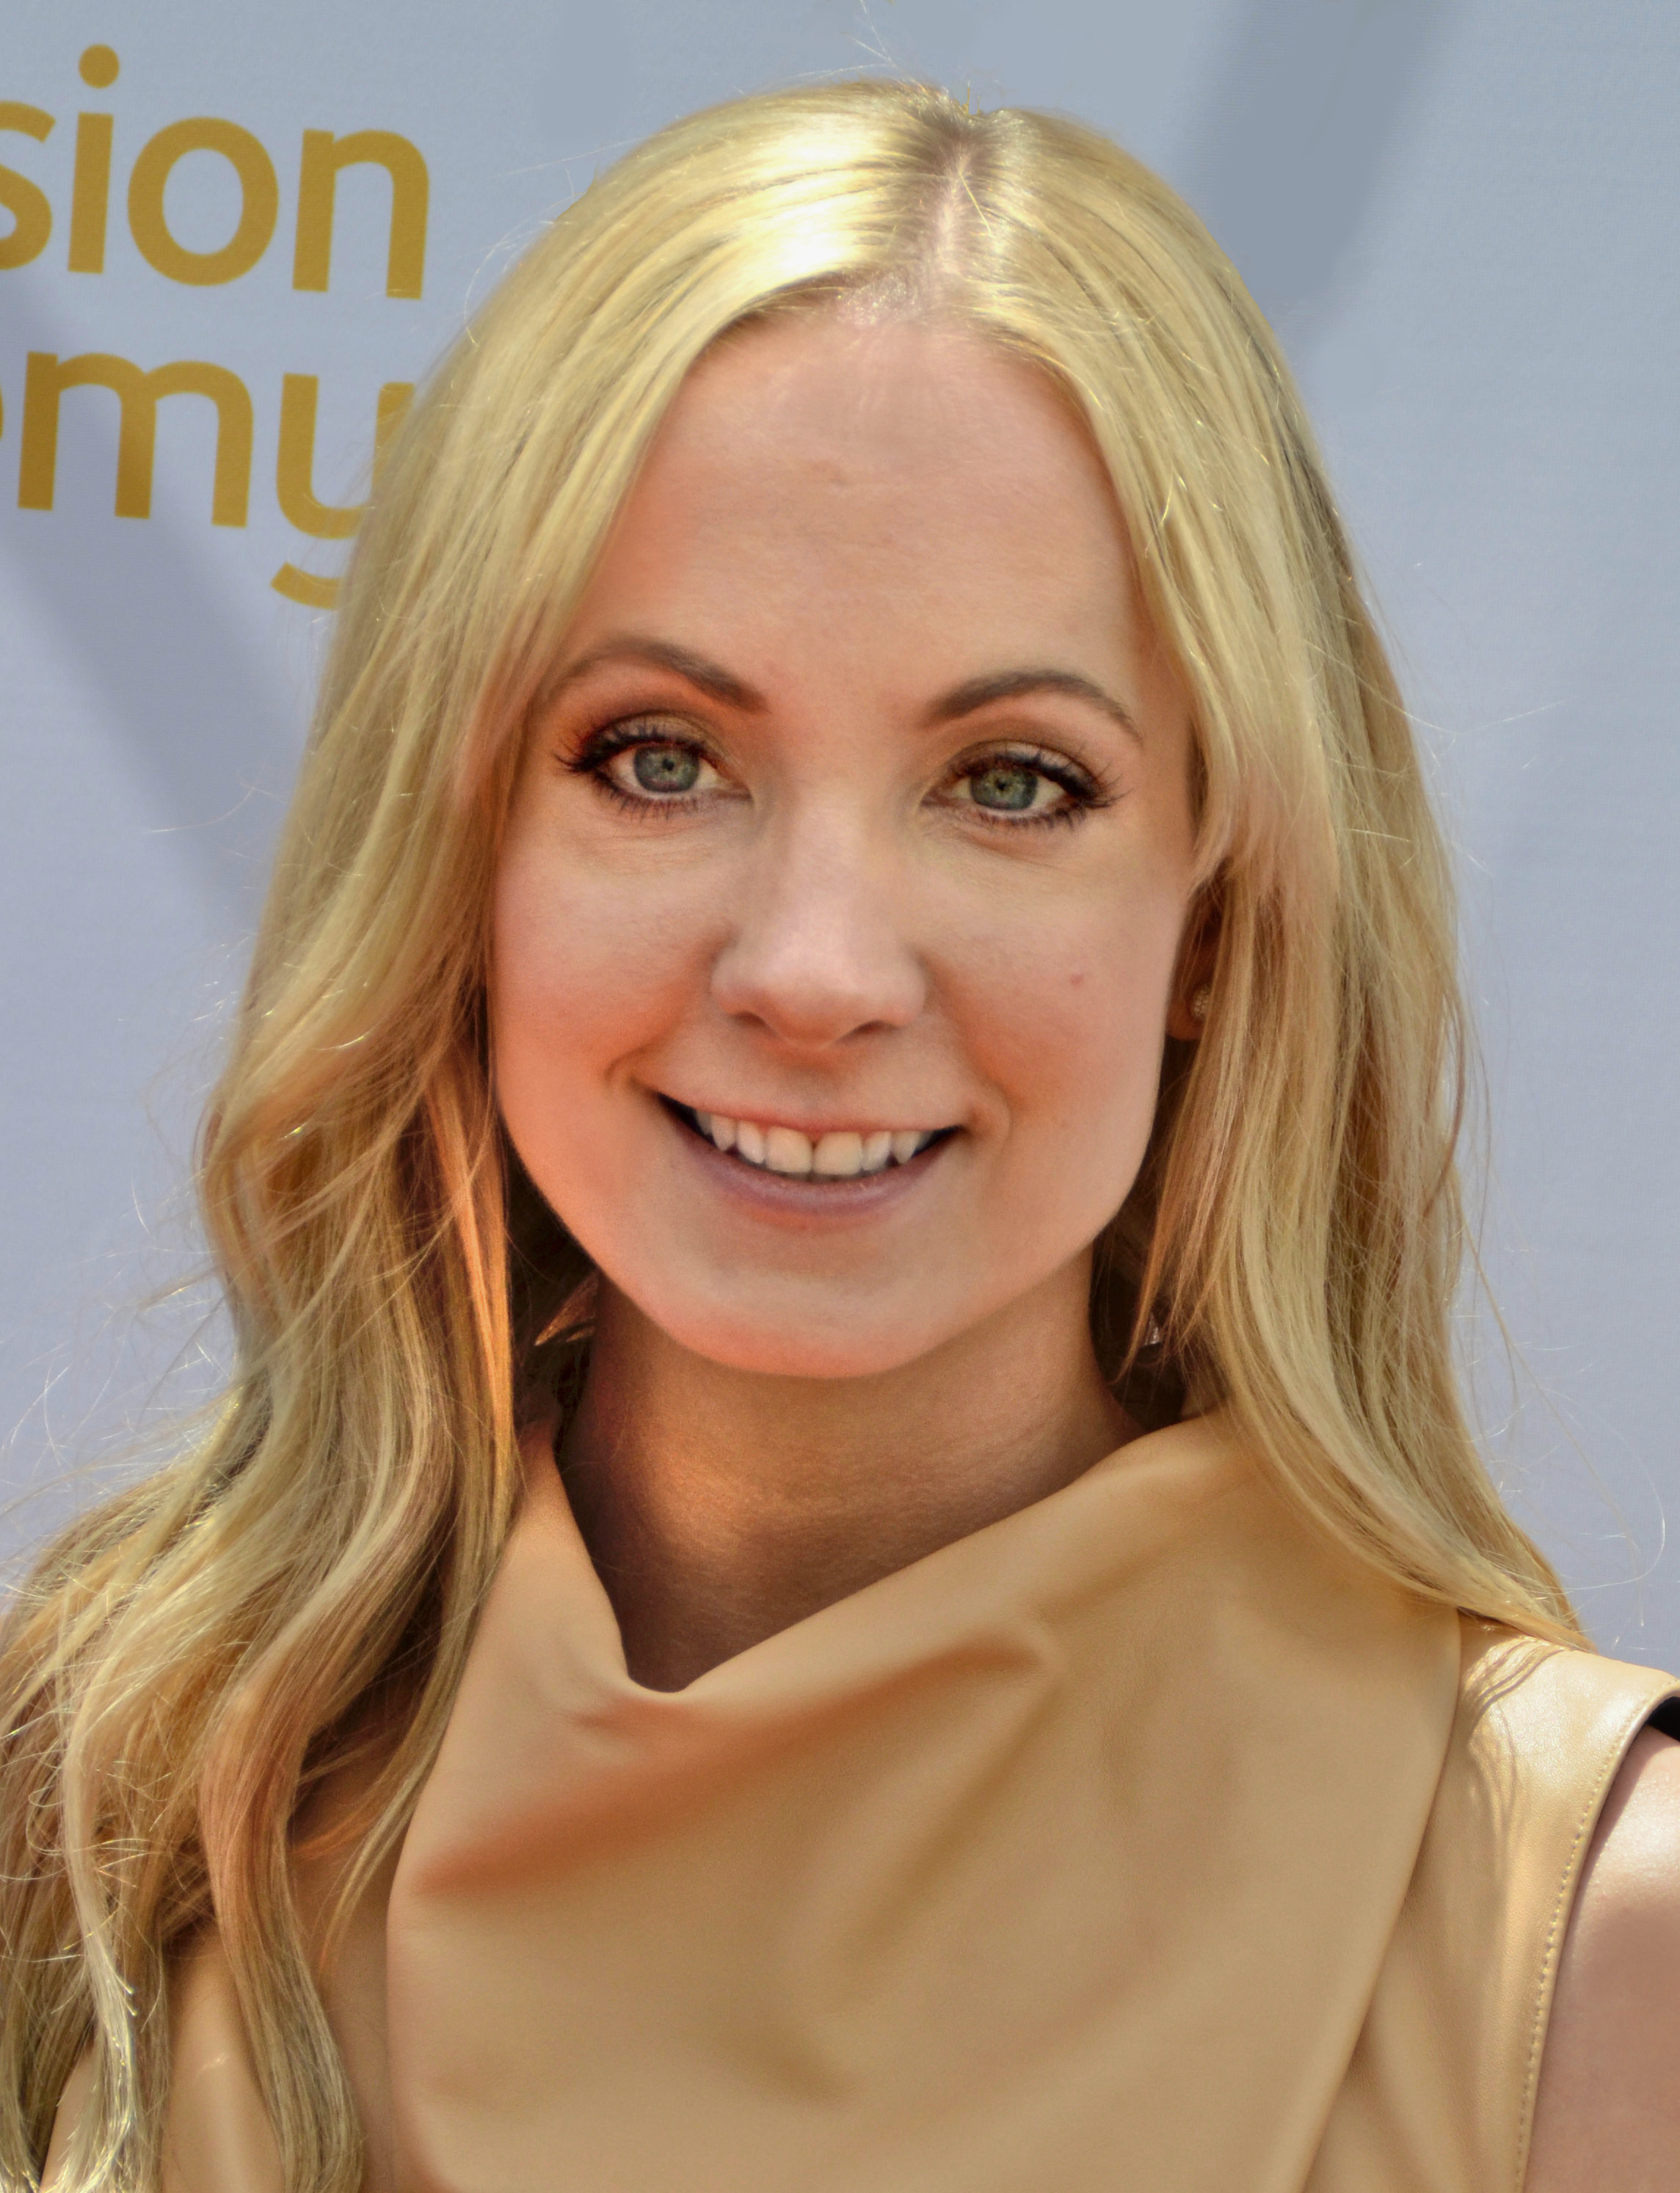 Joanne Froggatt earned a  million dollar salary, leaving the net worth at 2 million in 2017